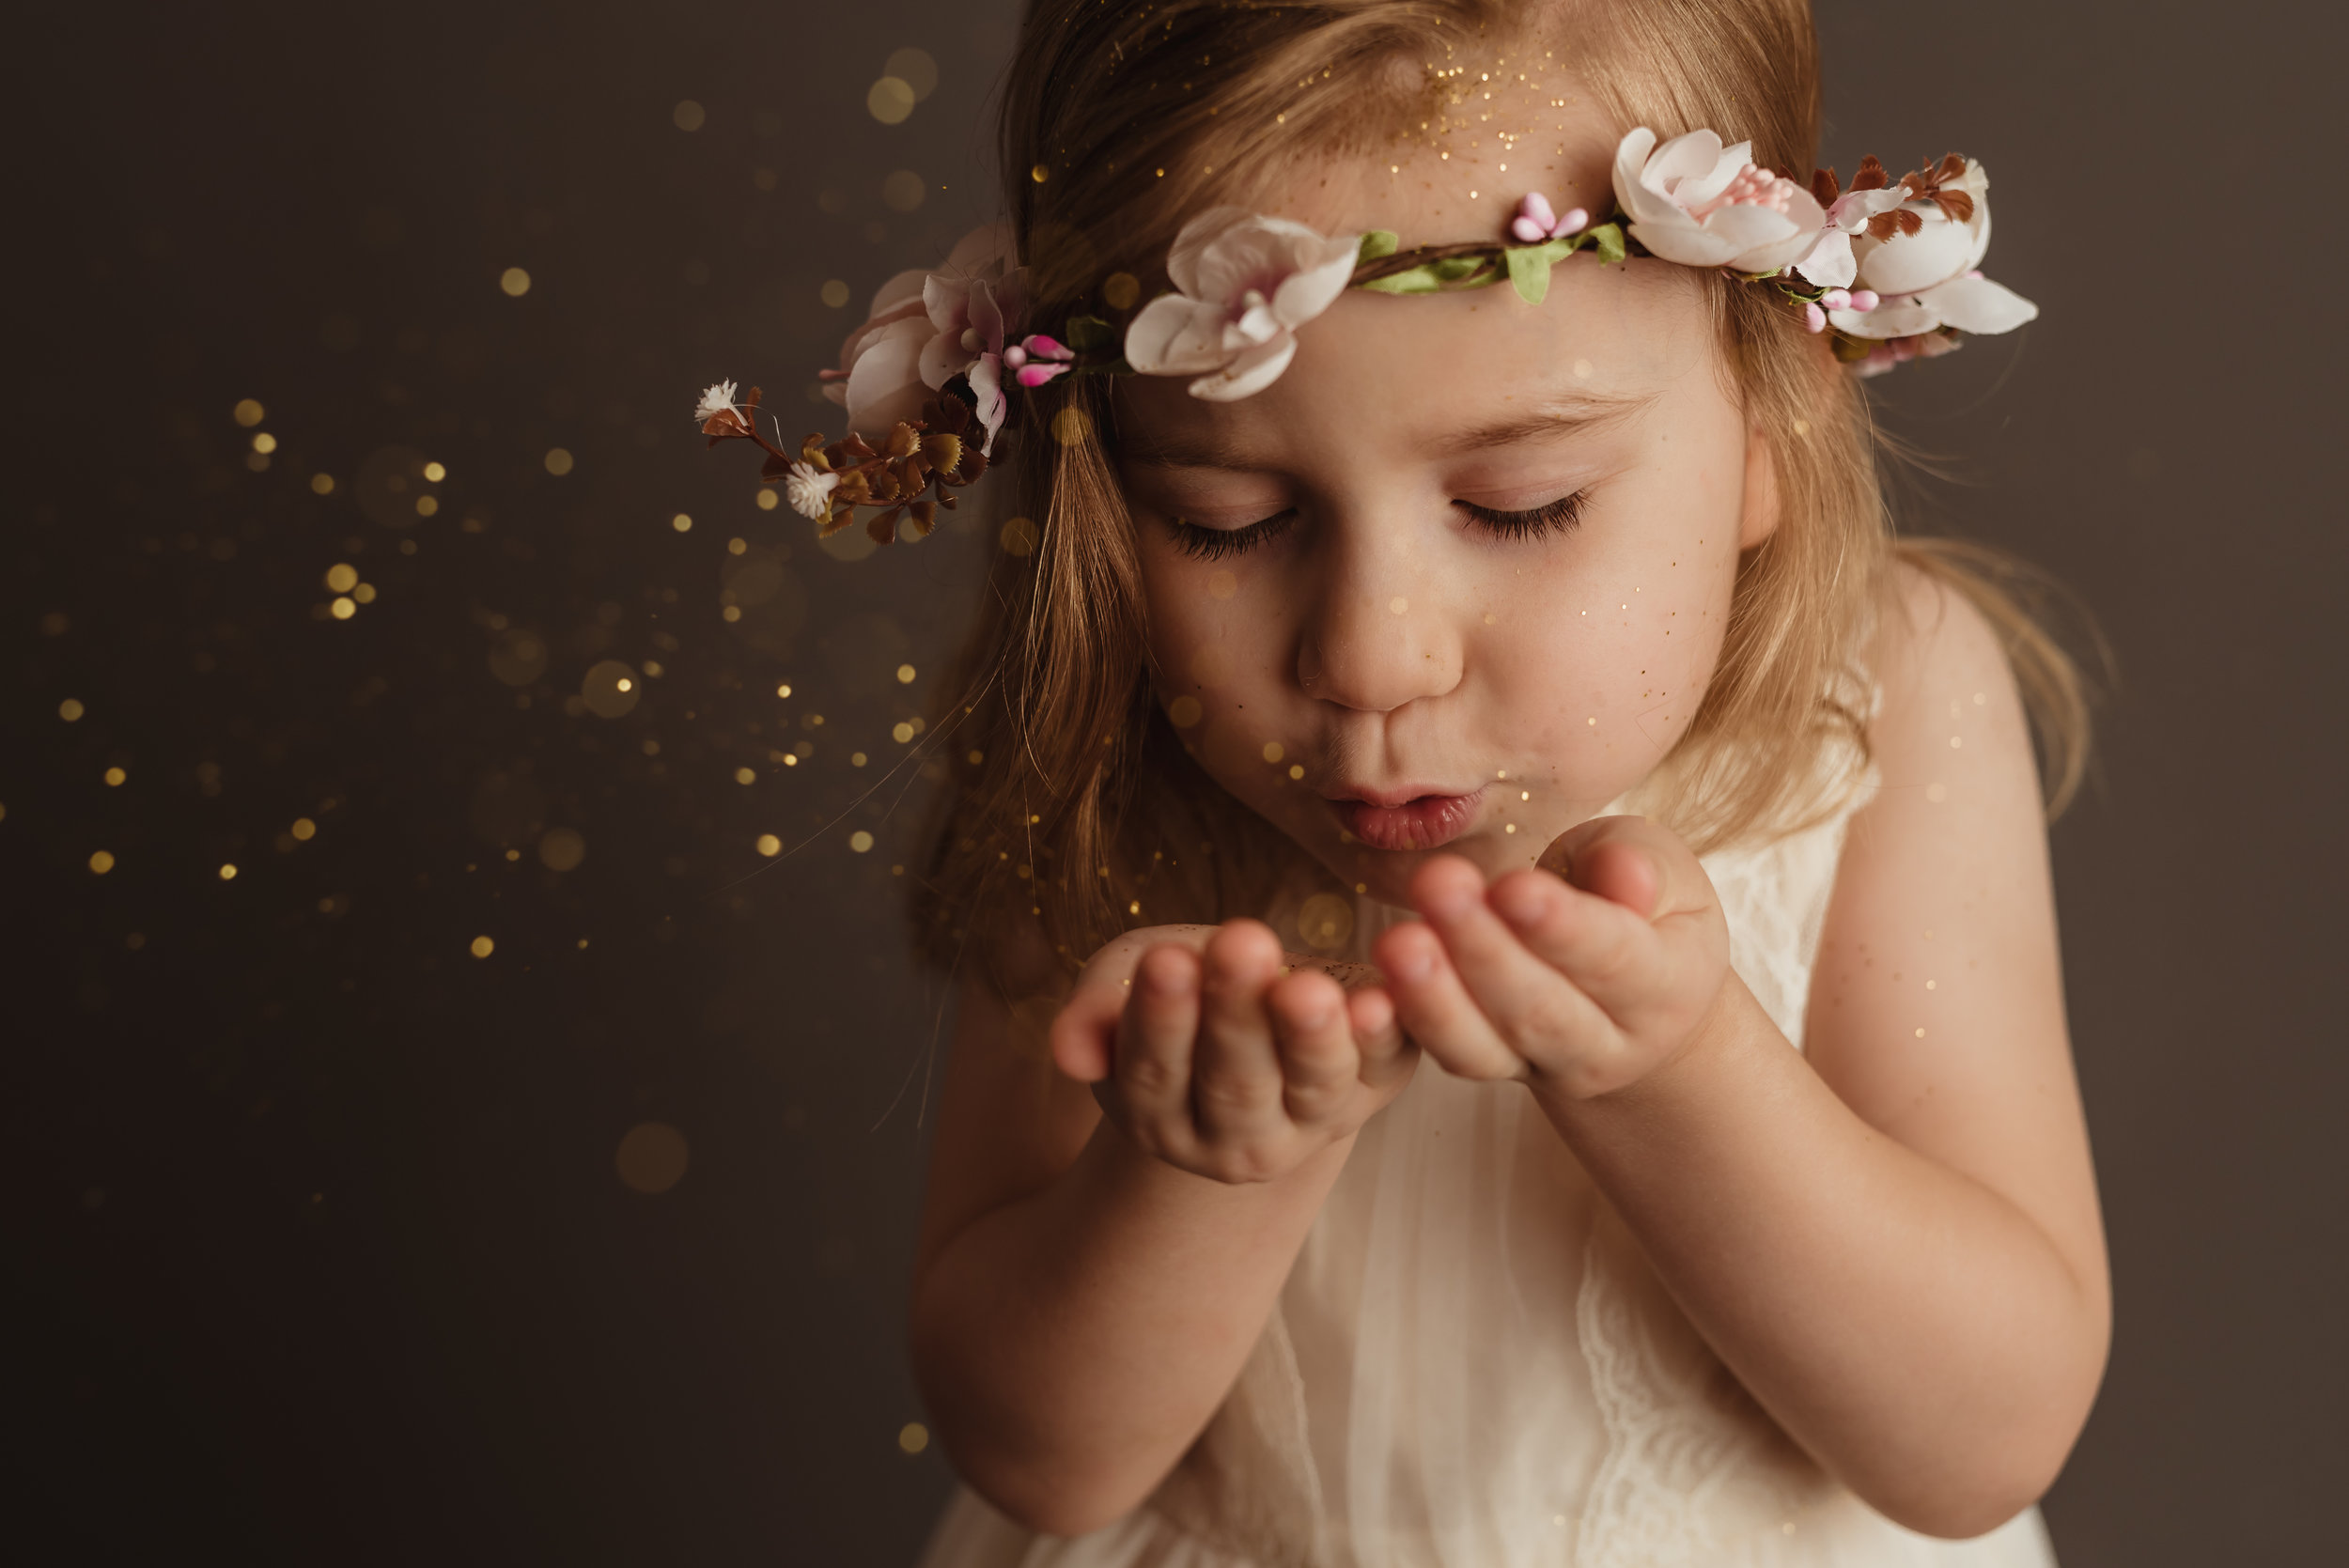 blowing glitter from her hands with junebug photography studio in manhattan, ks